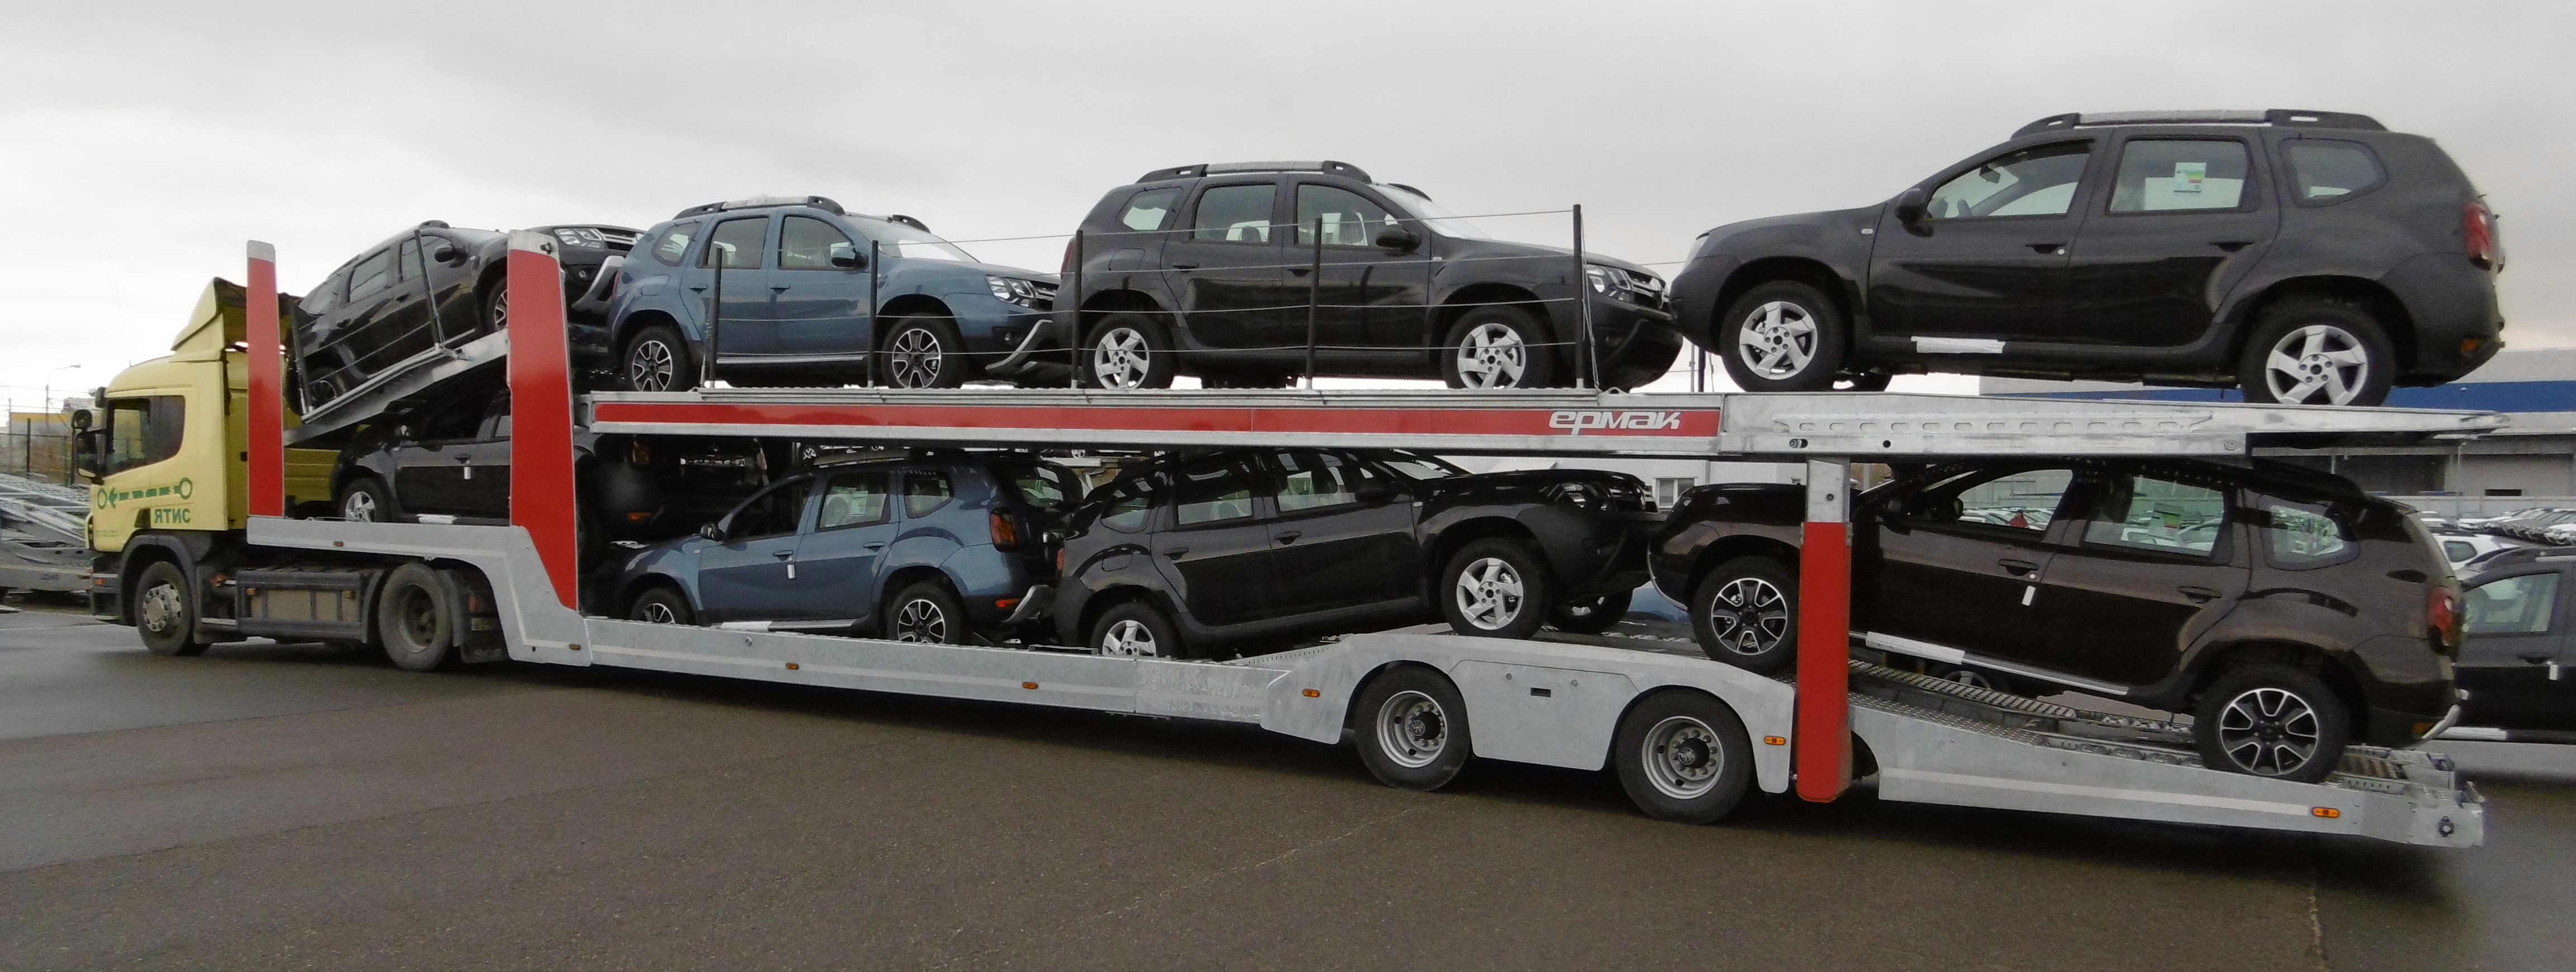 a car-carriers Lohr from the Ermak range designed in partnership with KDG for Russia, loaded with 8 SUVs